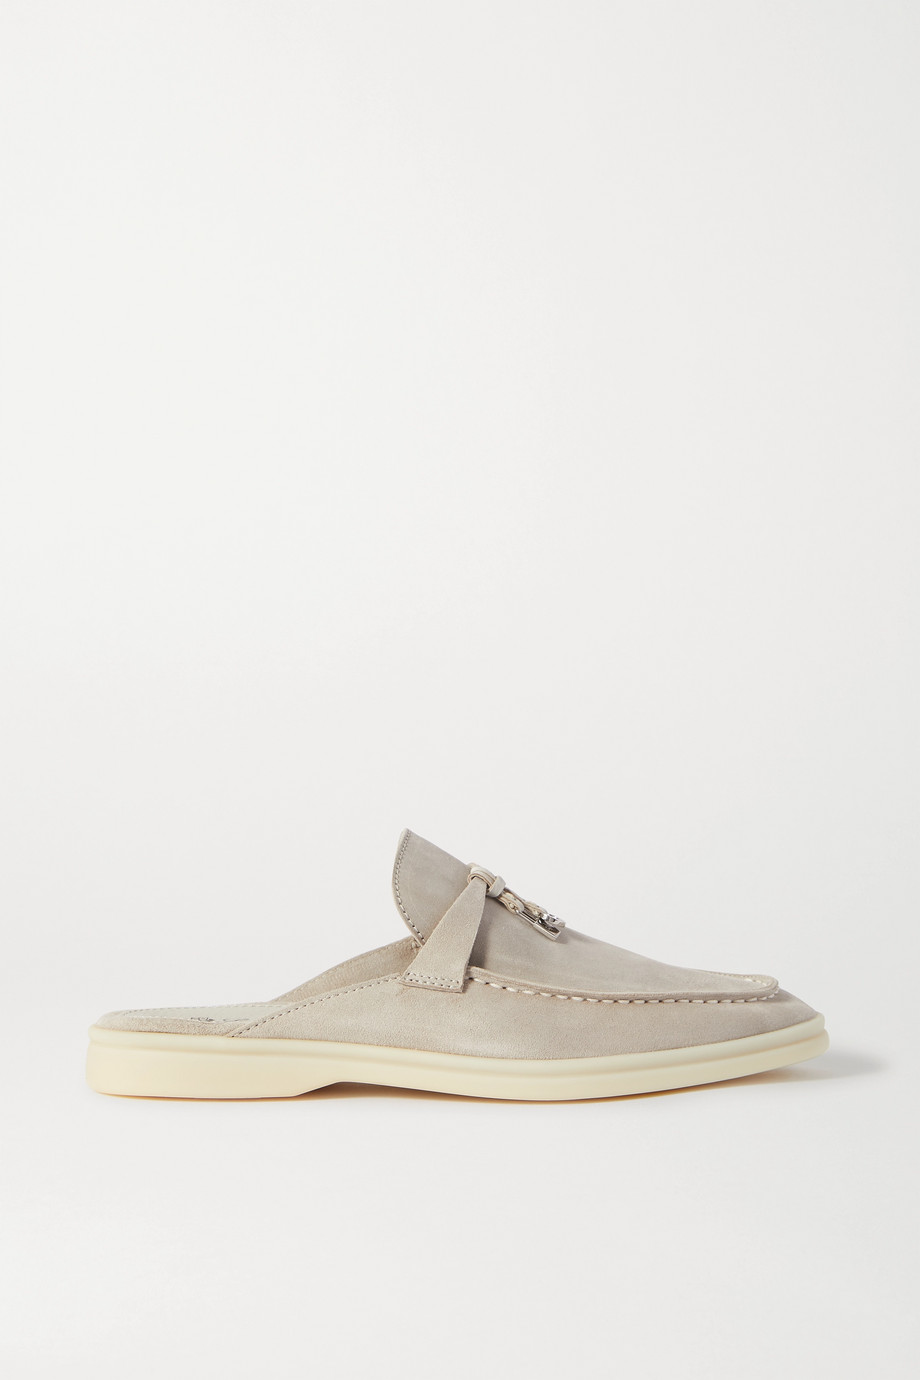 Loro Piana Babouche Charms Walk suede slippers